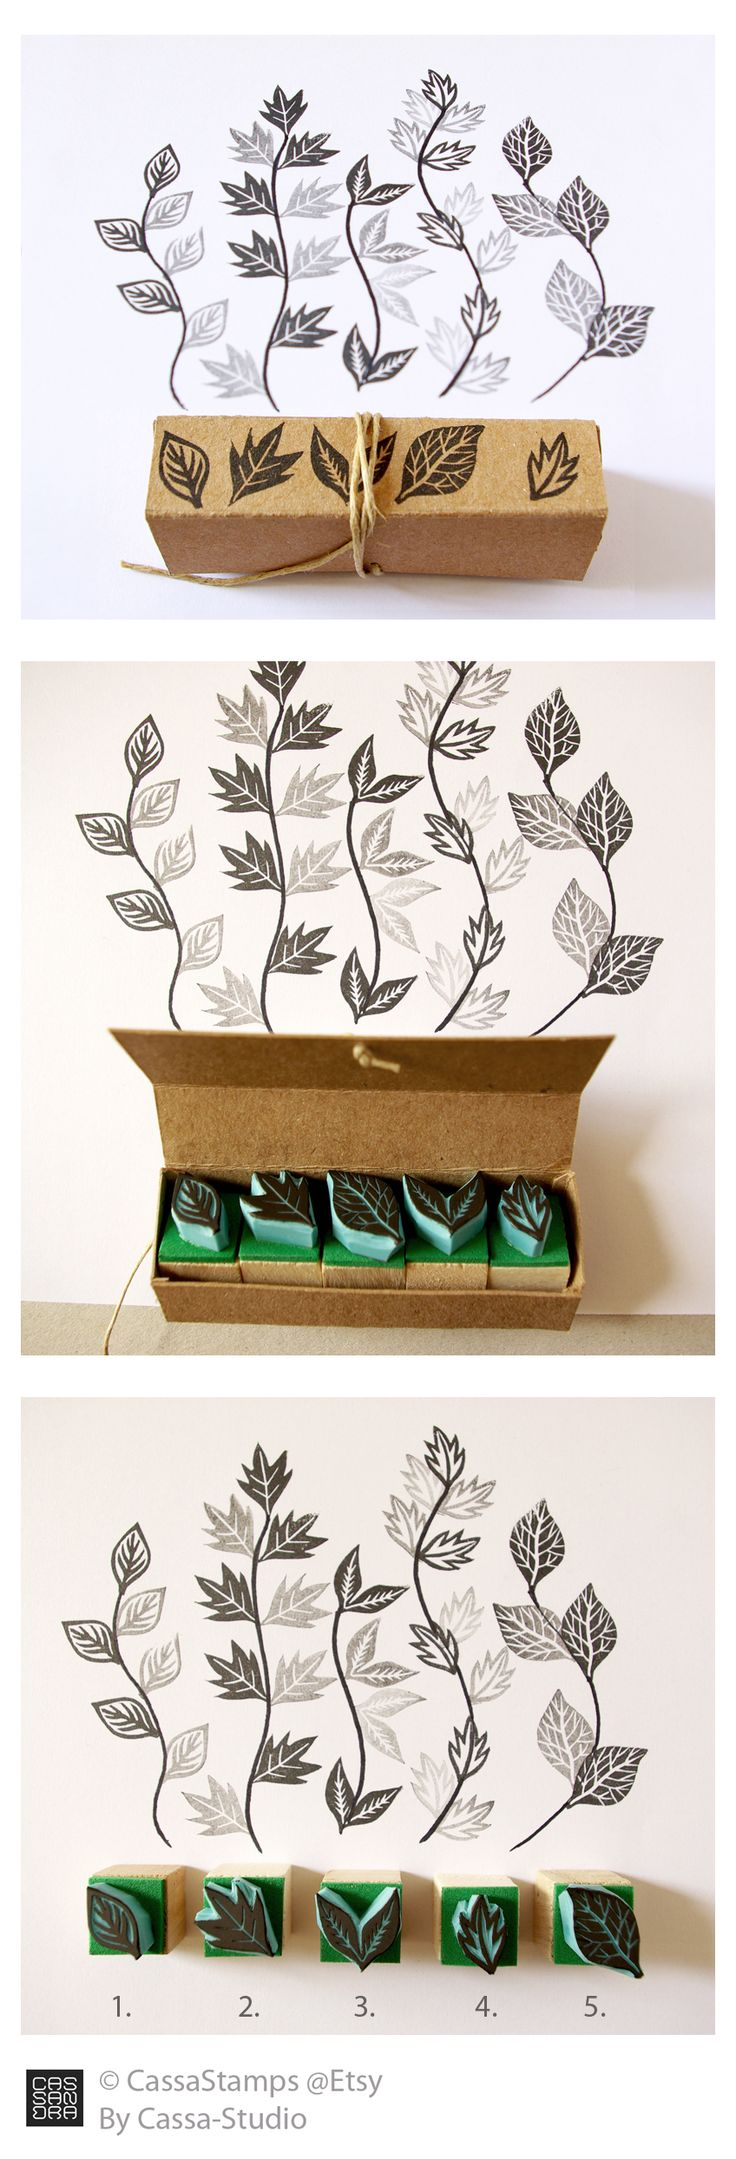 Miniature rubber stamps of leaves by CassaStamps #Etsy